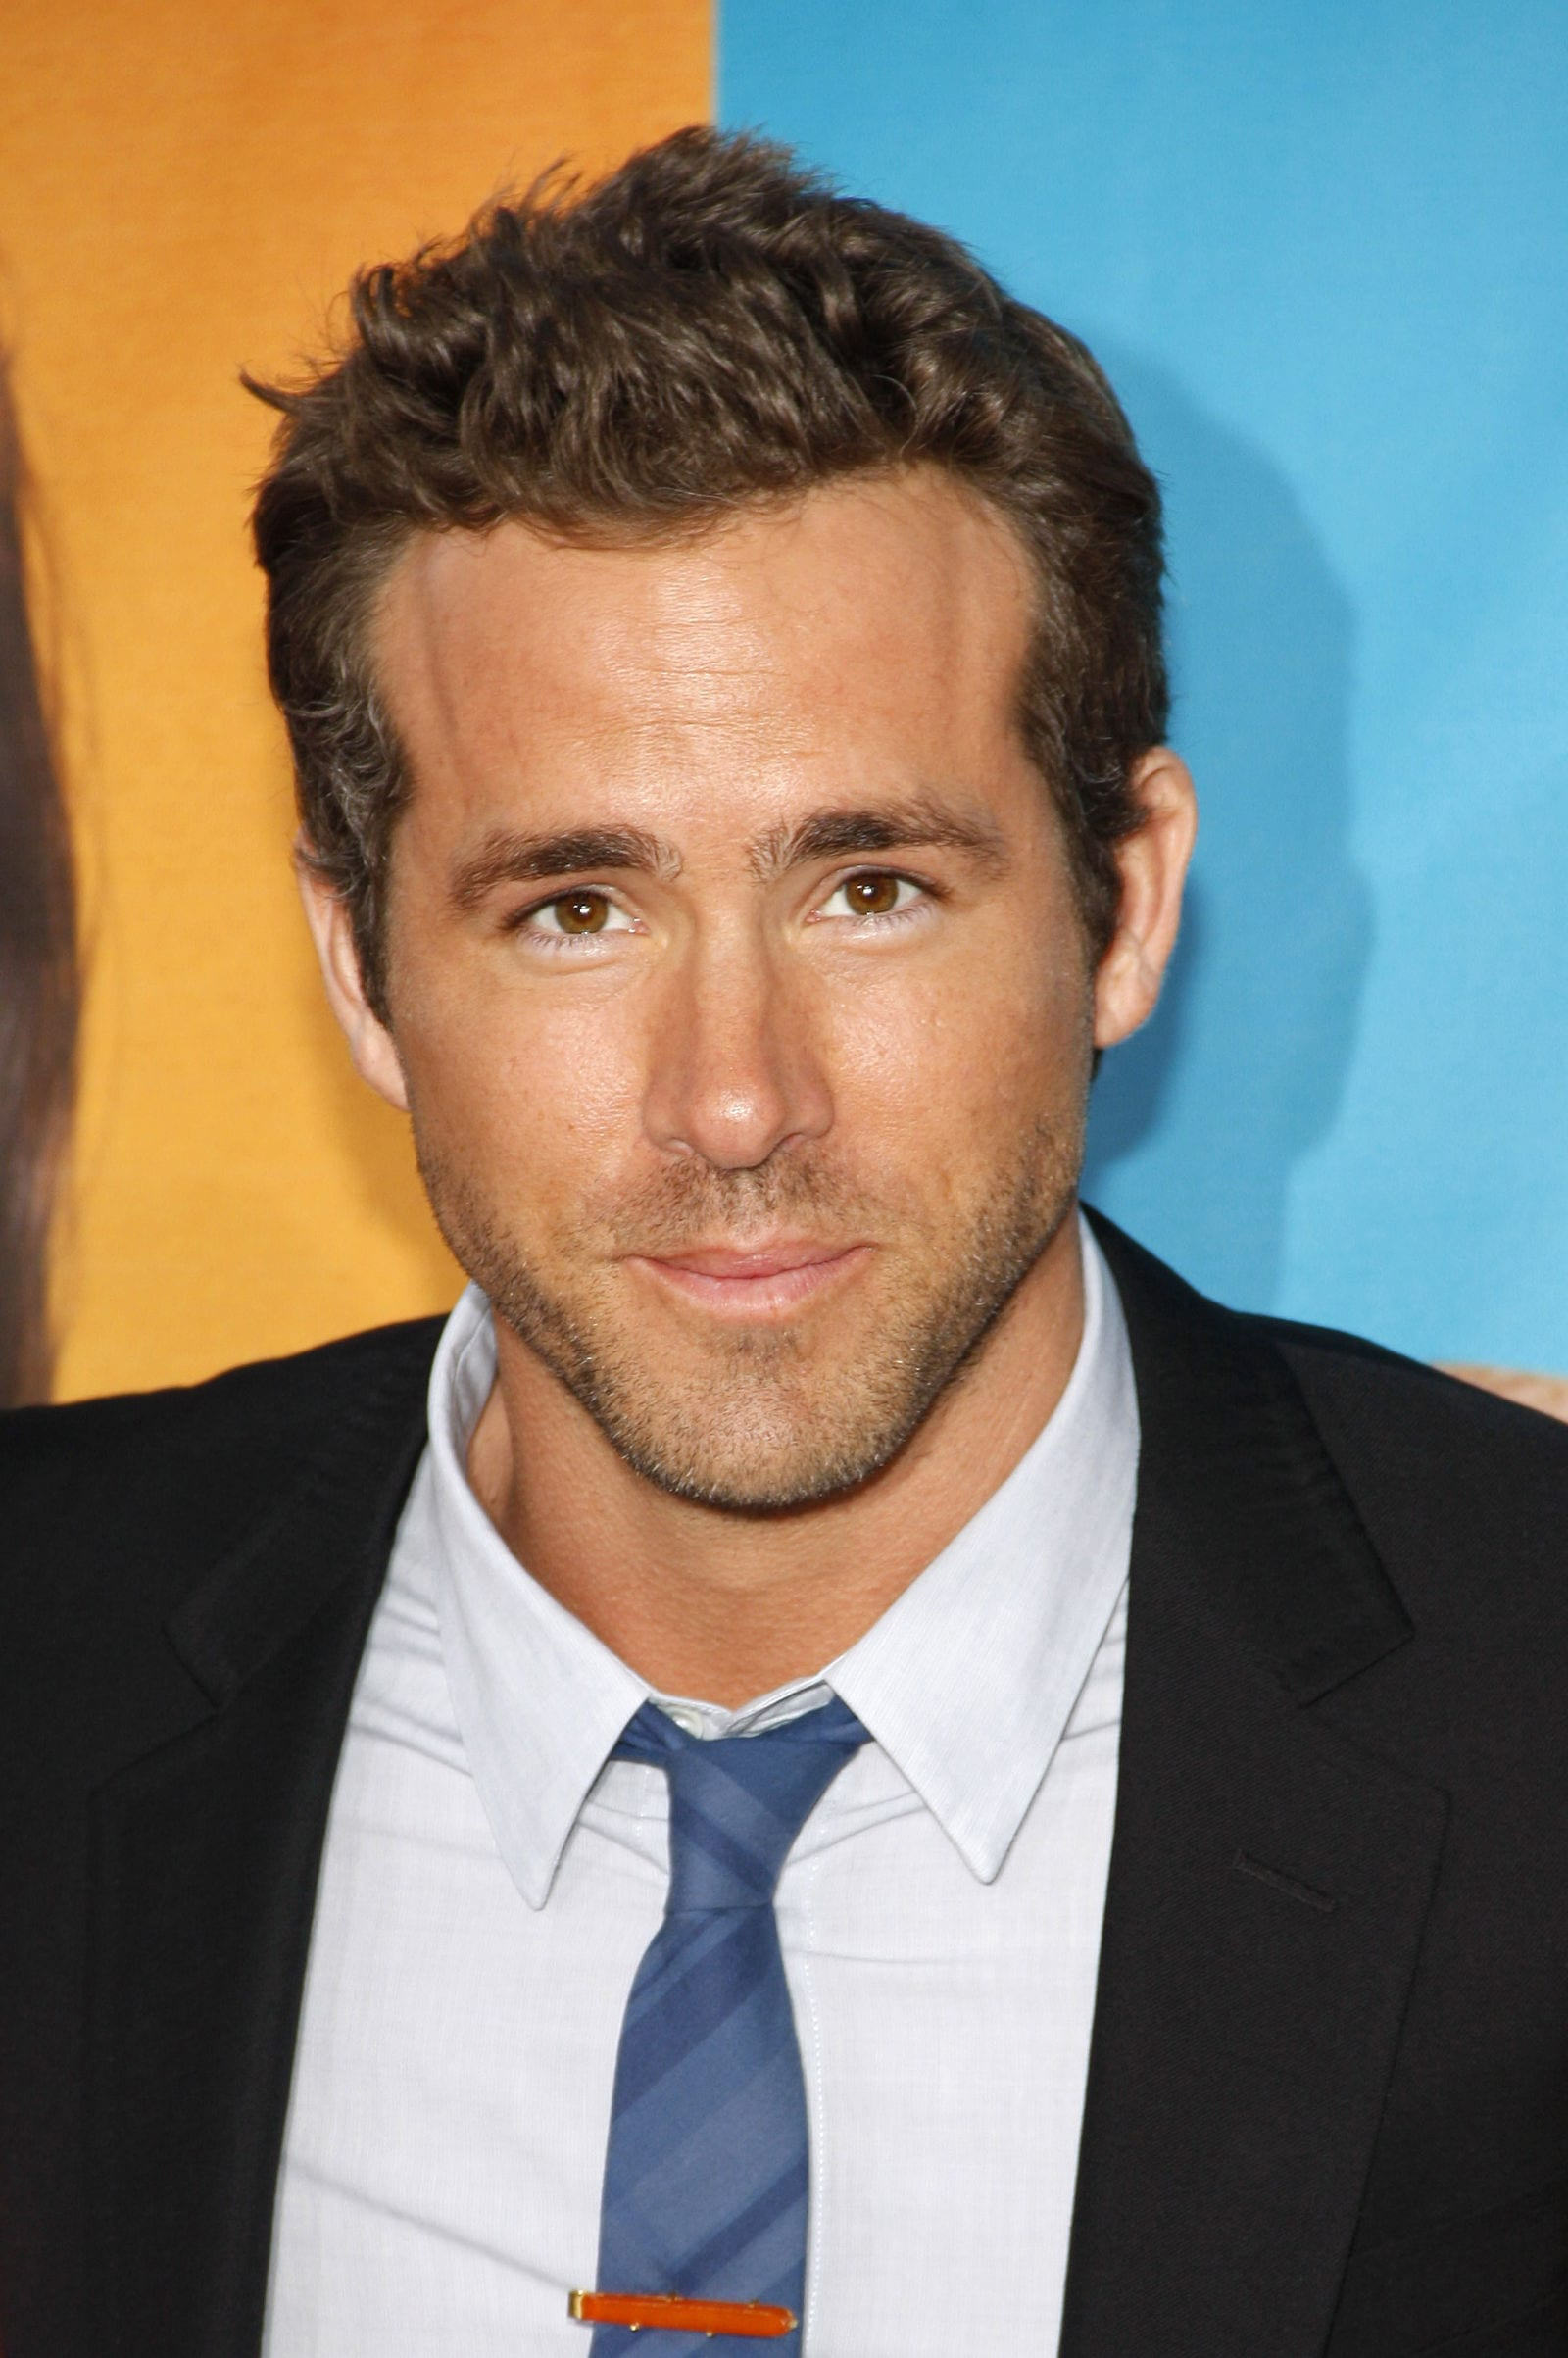 Ryan Reynolds messy, medium length style